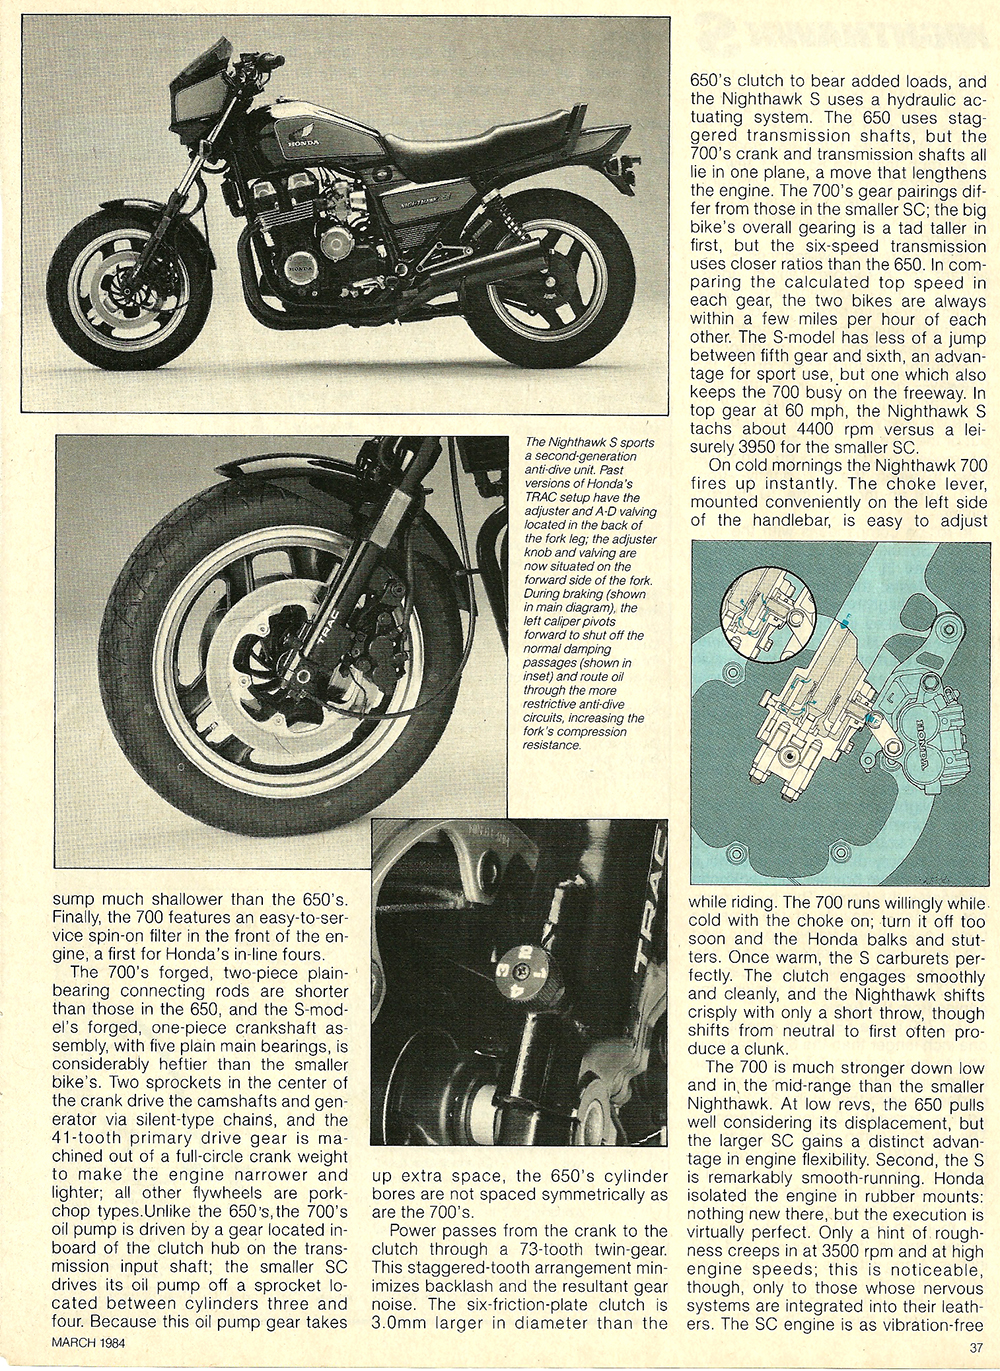 1984 Honda CB700SC Nighthawk S road test 6.jpg